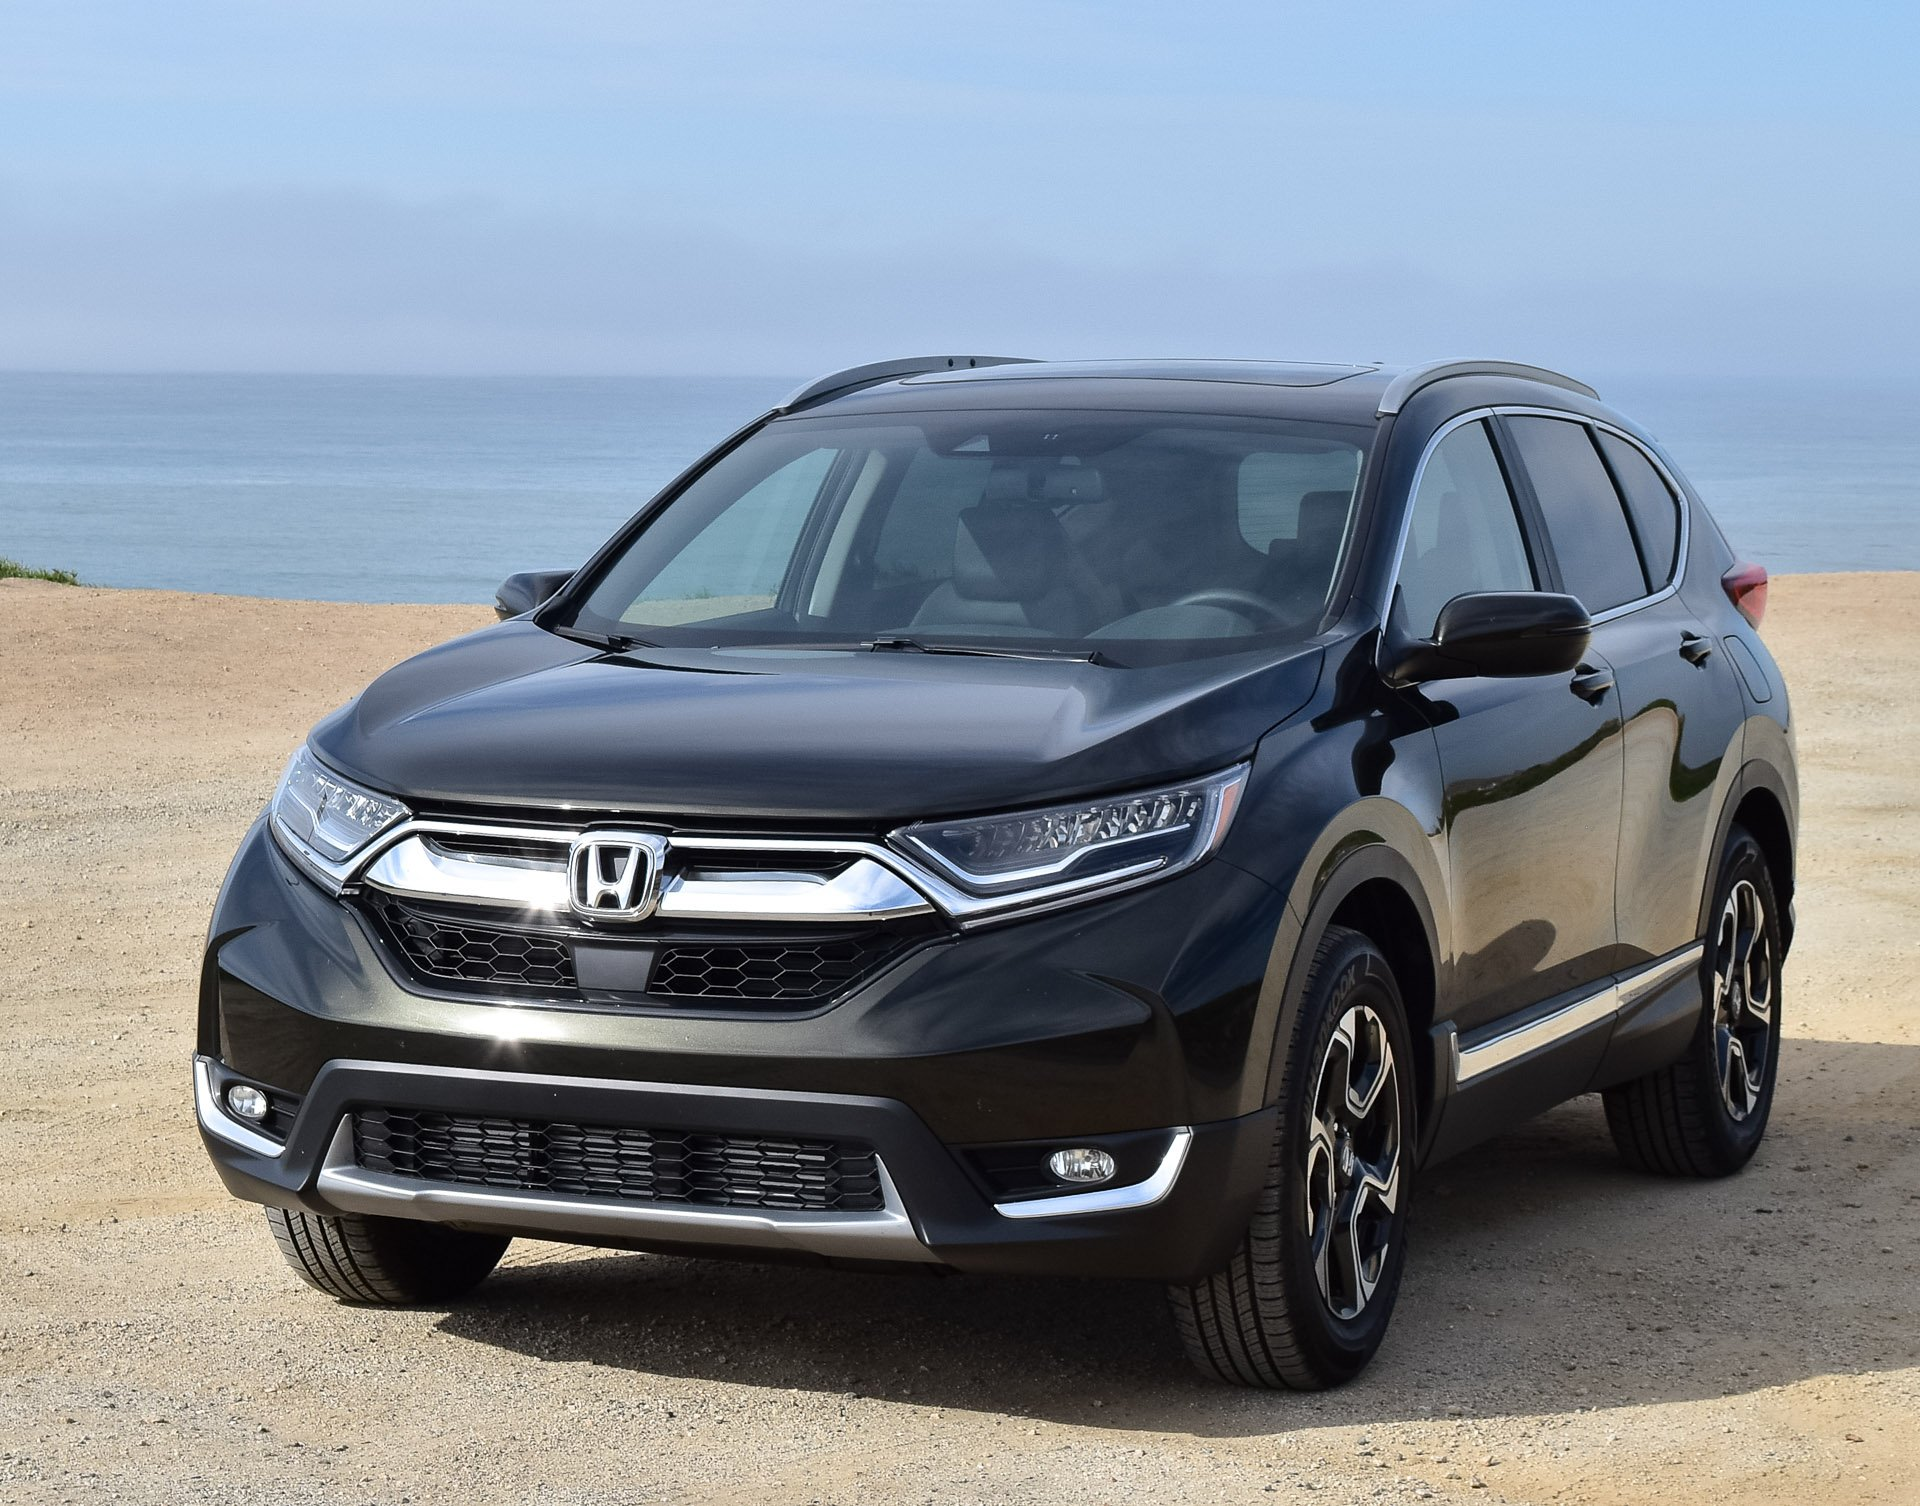 first drive review 2017 honda cr v 95 octane